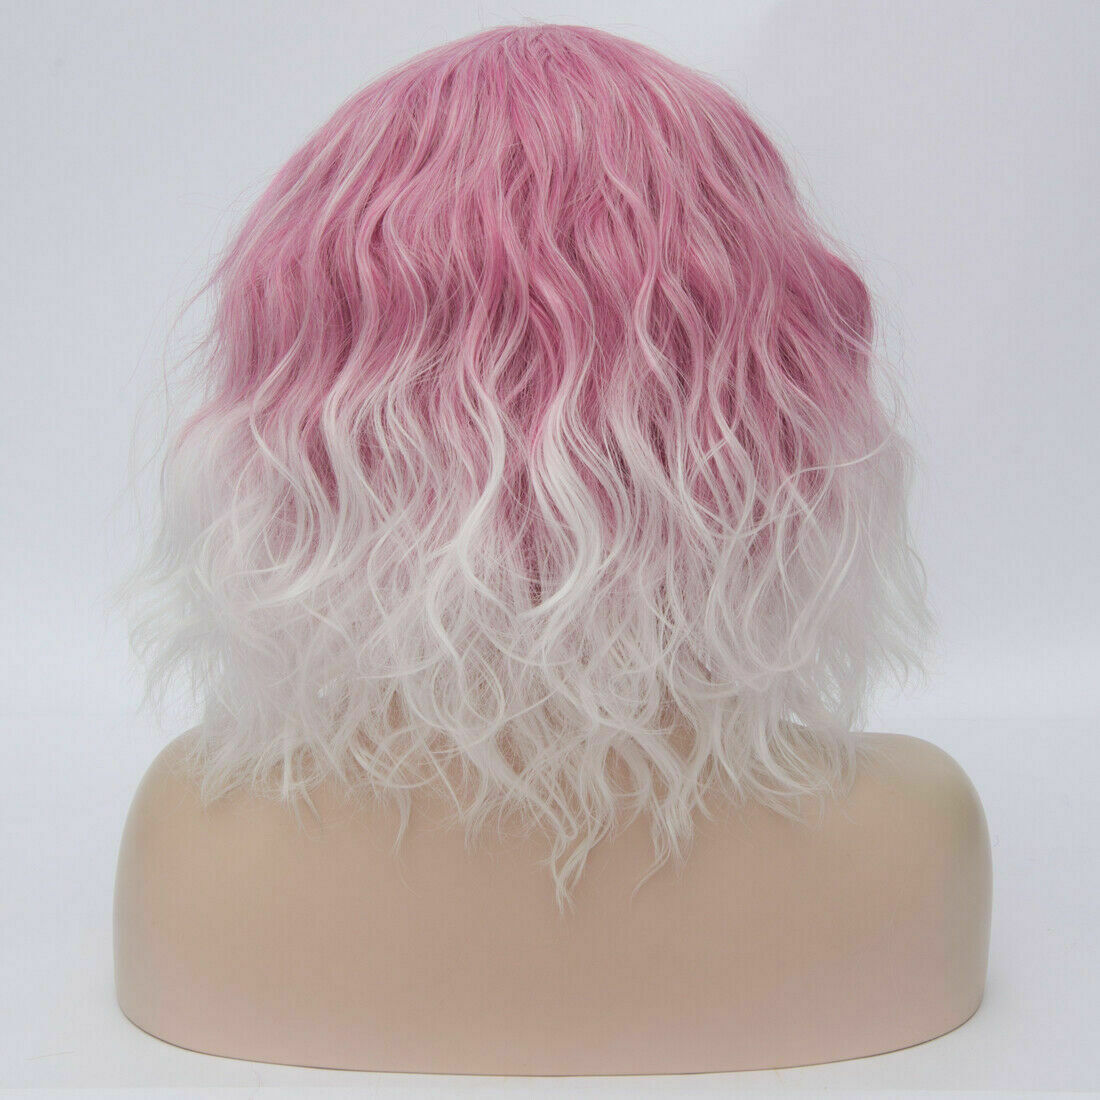 Lolita-Women-039-s-Short-Curly-Anime-Synthetic-Hair-Heat-Resistant-Cosplay-Party-Wig miniature 31